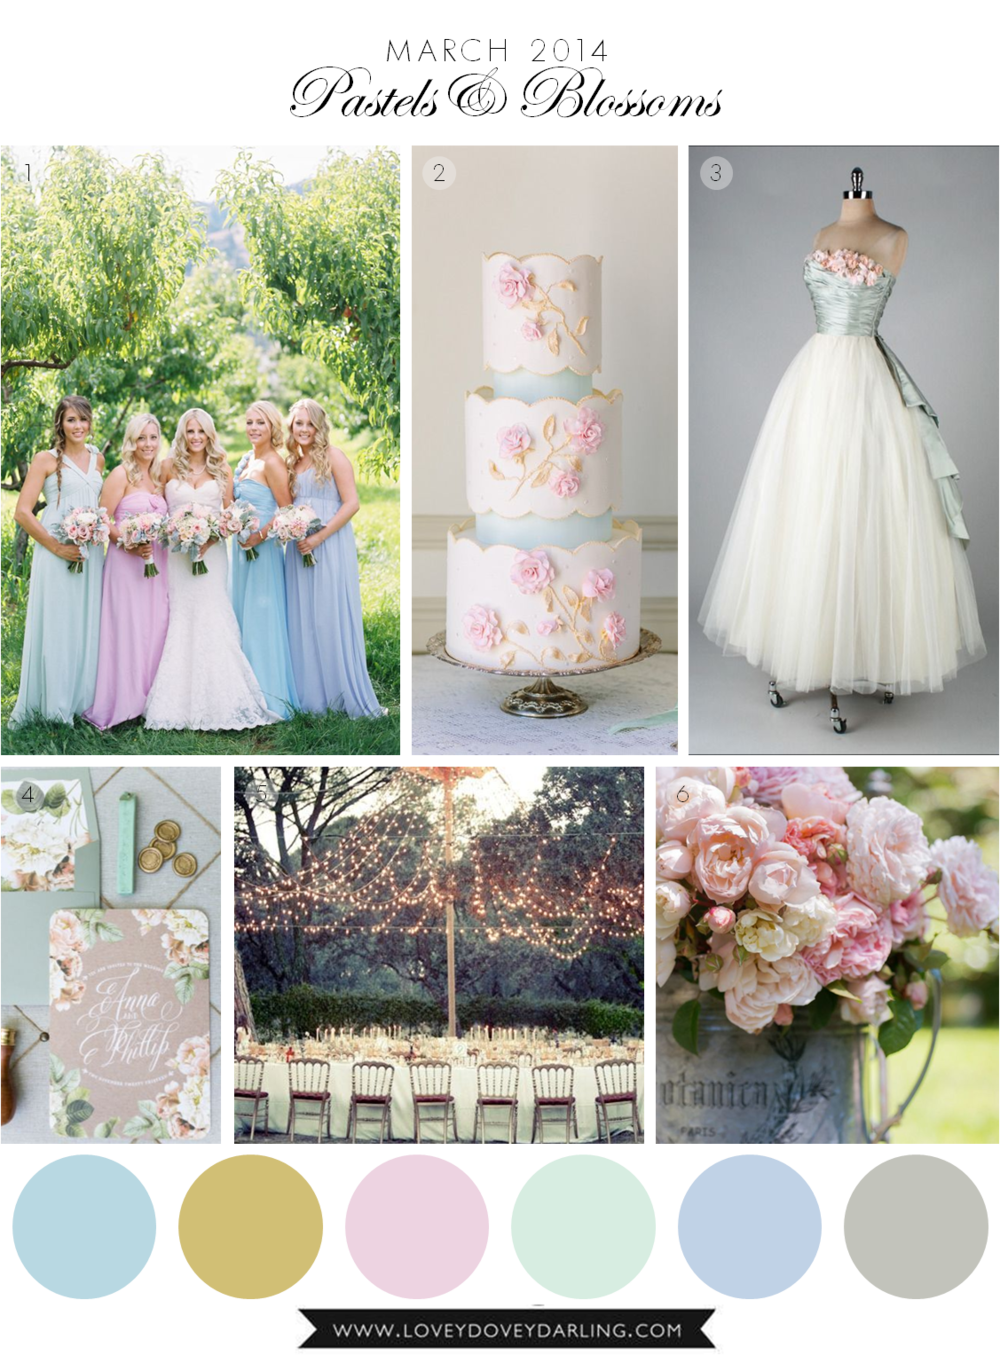 Lovey Dovey Darling | March Wedding Inspiration Board - Pastels and Blossoms